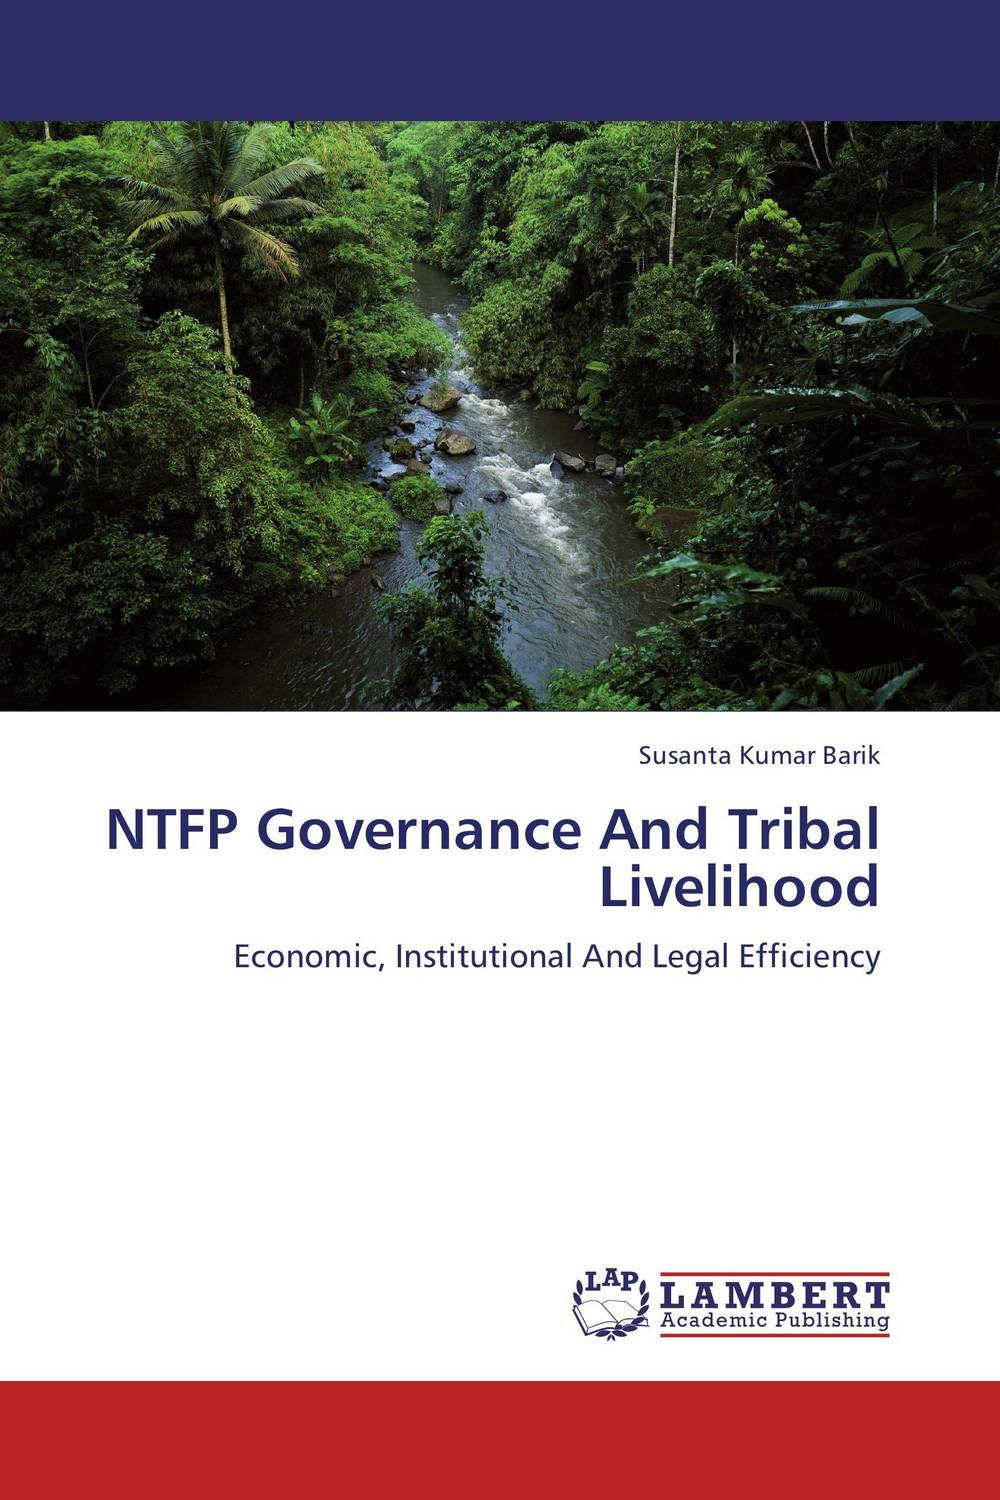 NTFP Governance And Tribal Livelihood ahmed mohammed non timber forest products and food security